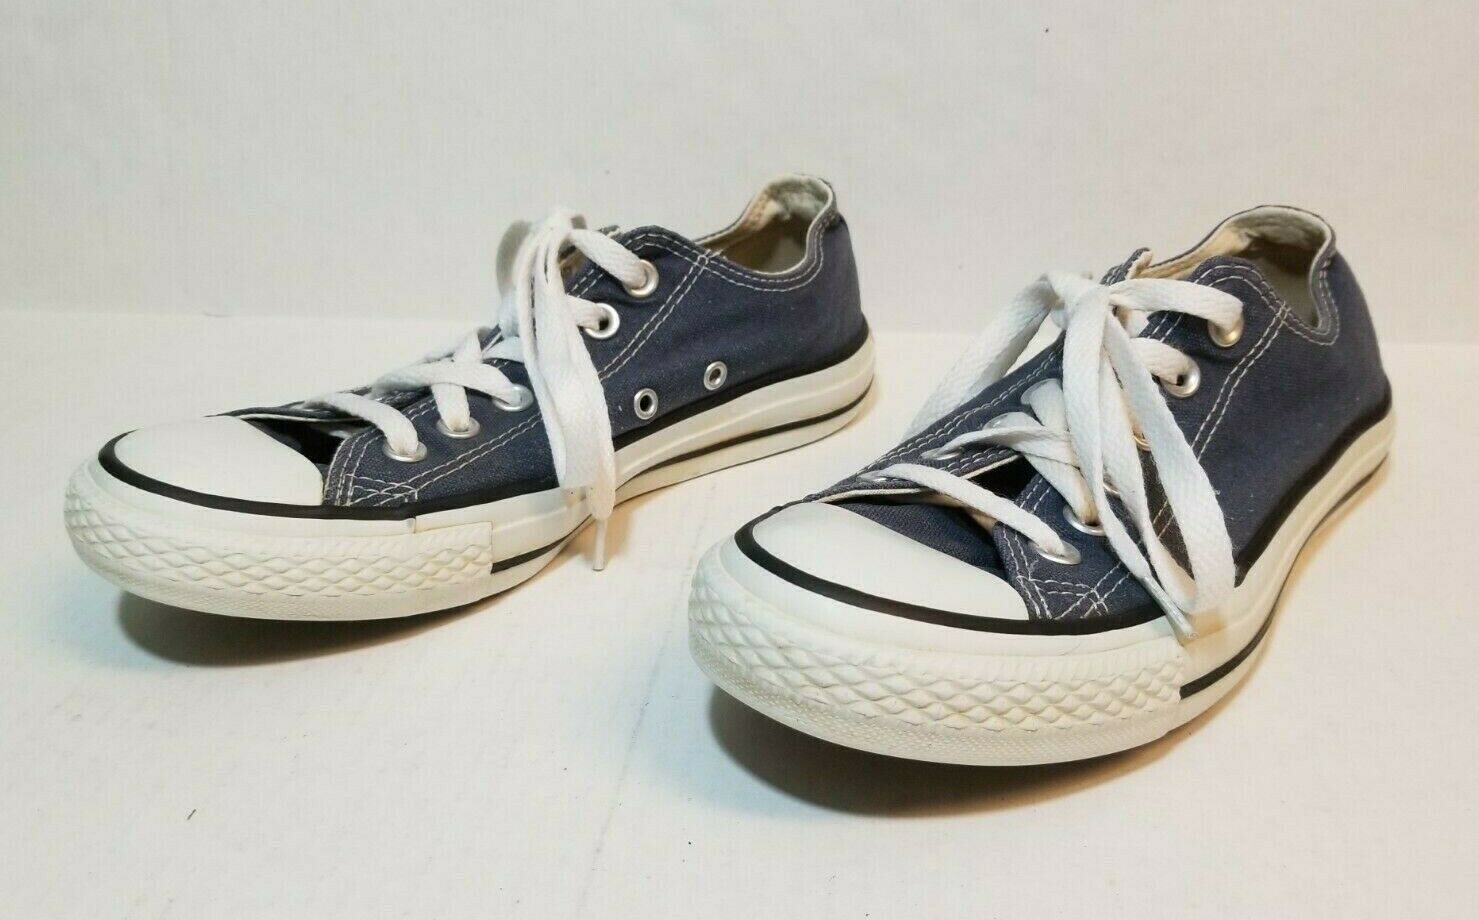 Primary image for Converse Chuck Taylor All Star Blue Low Top Sneakers Shoes Women Size 7 Men 5